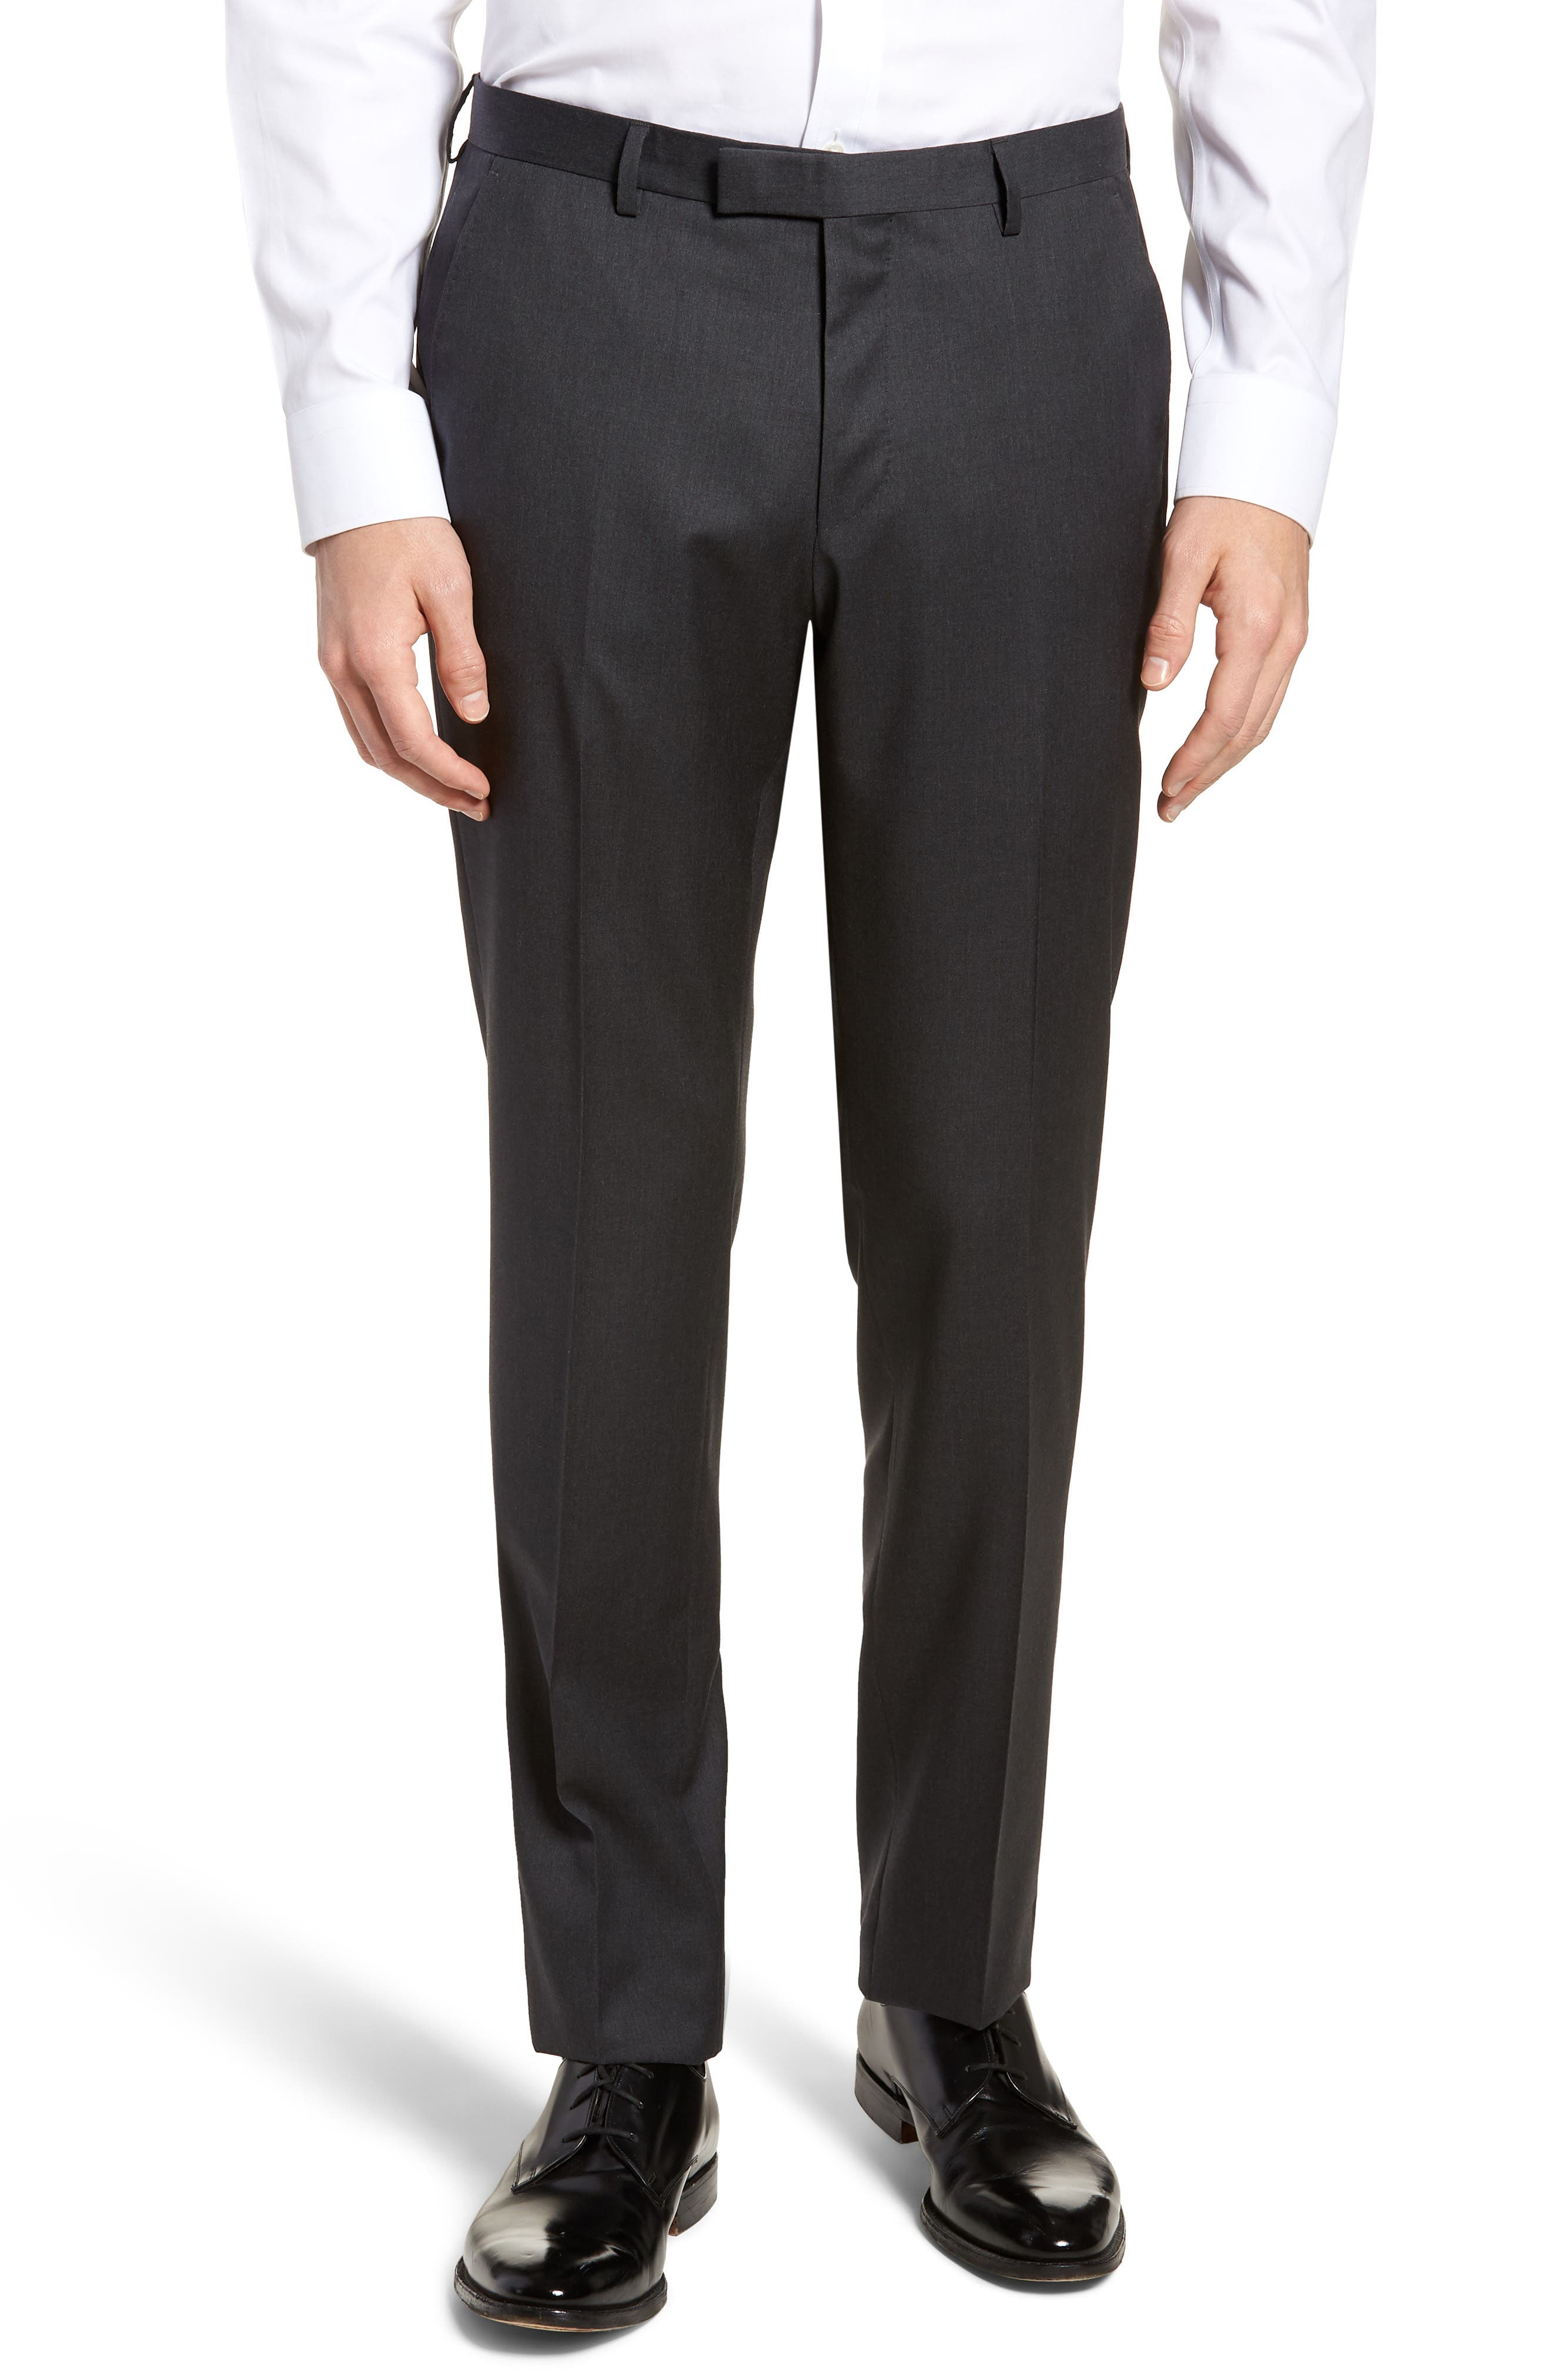 Lenon CYL Flat Front Solid Wool Trousers,                             Main thumbnail 1, color,                             Dark Grey